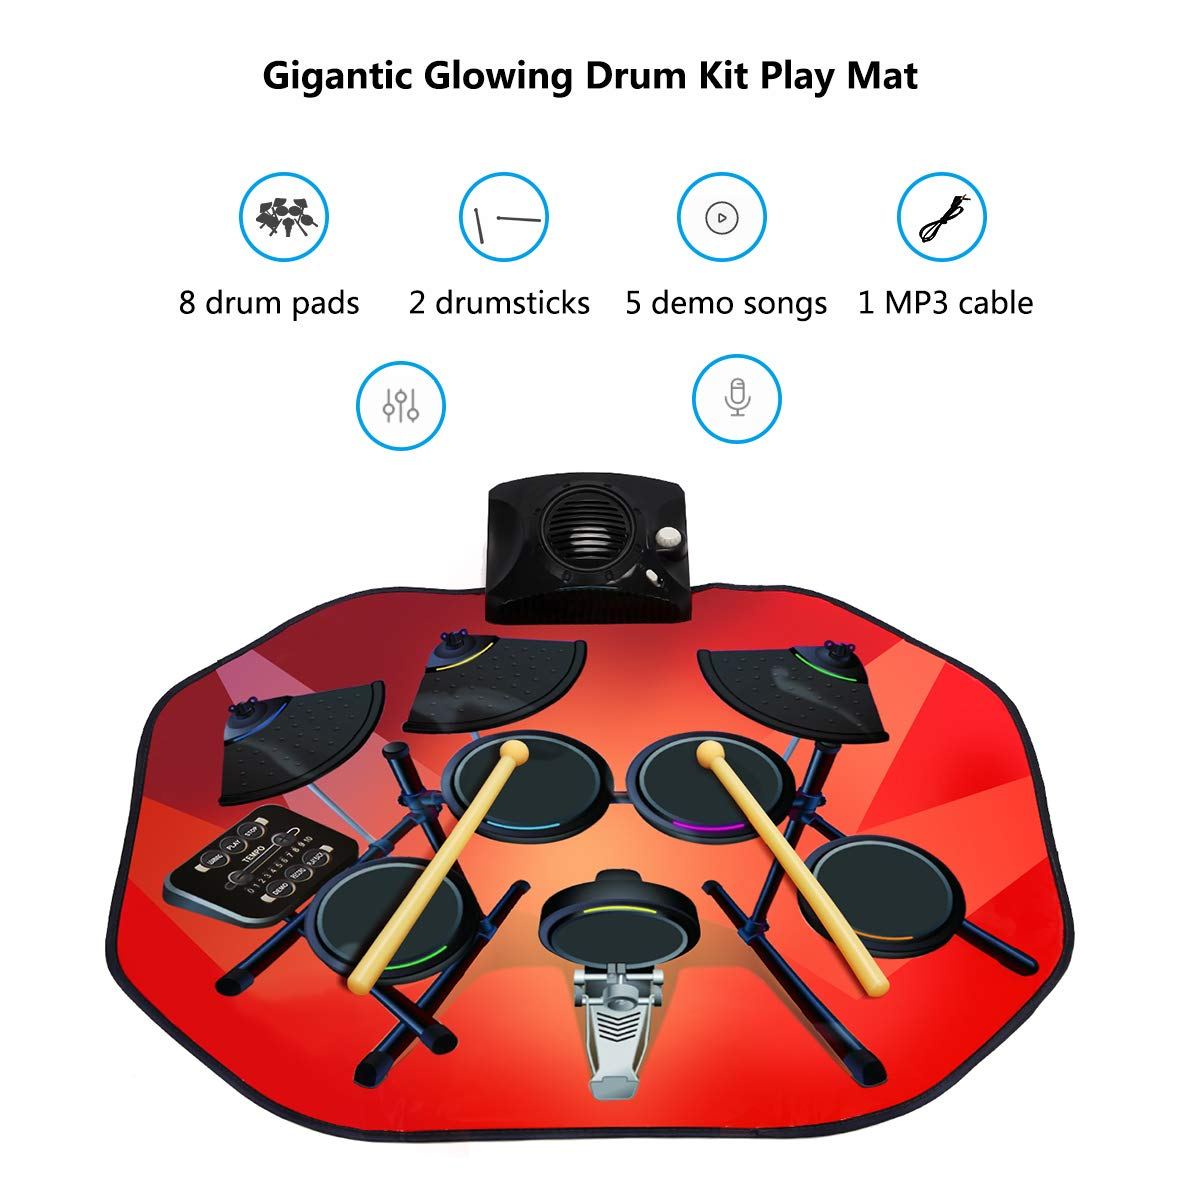 Costzon Electronic Drum Mat, 8 Keys Glowing Music Mat with LED Lights,MP3 Cable, Drumsticks, Support Play - Study-Record - Playback - Demo 5 Modes, Volume Control by Costzon (Image #3)